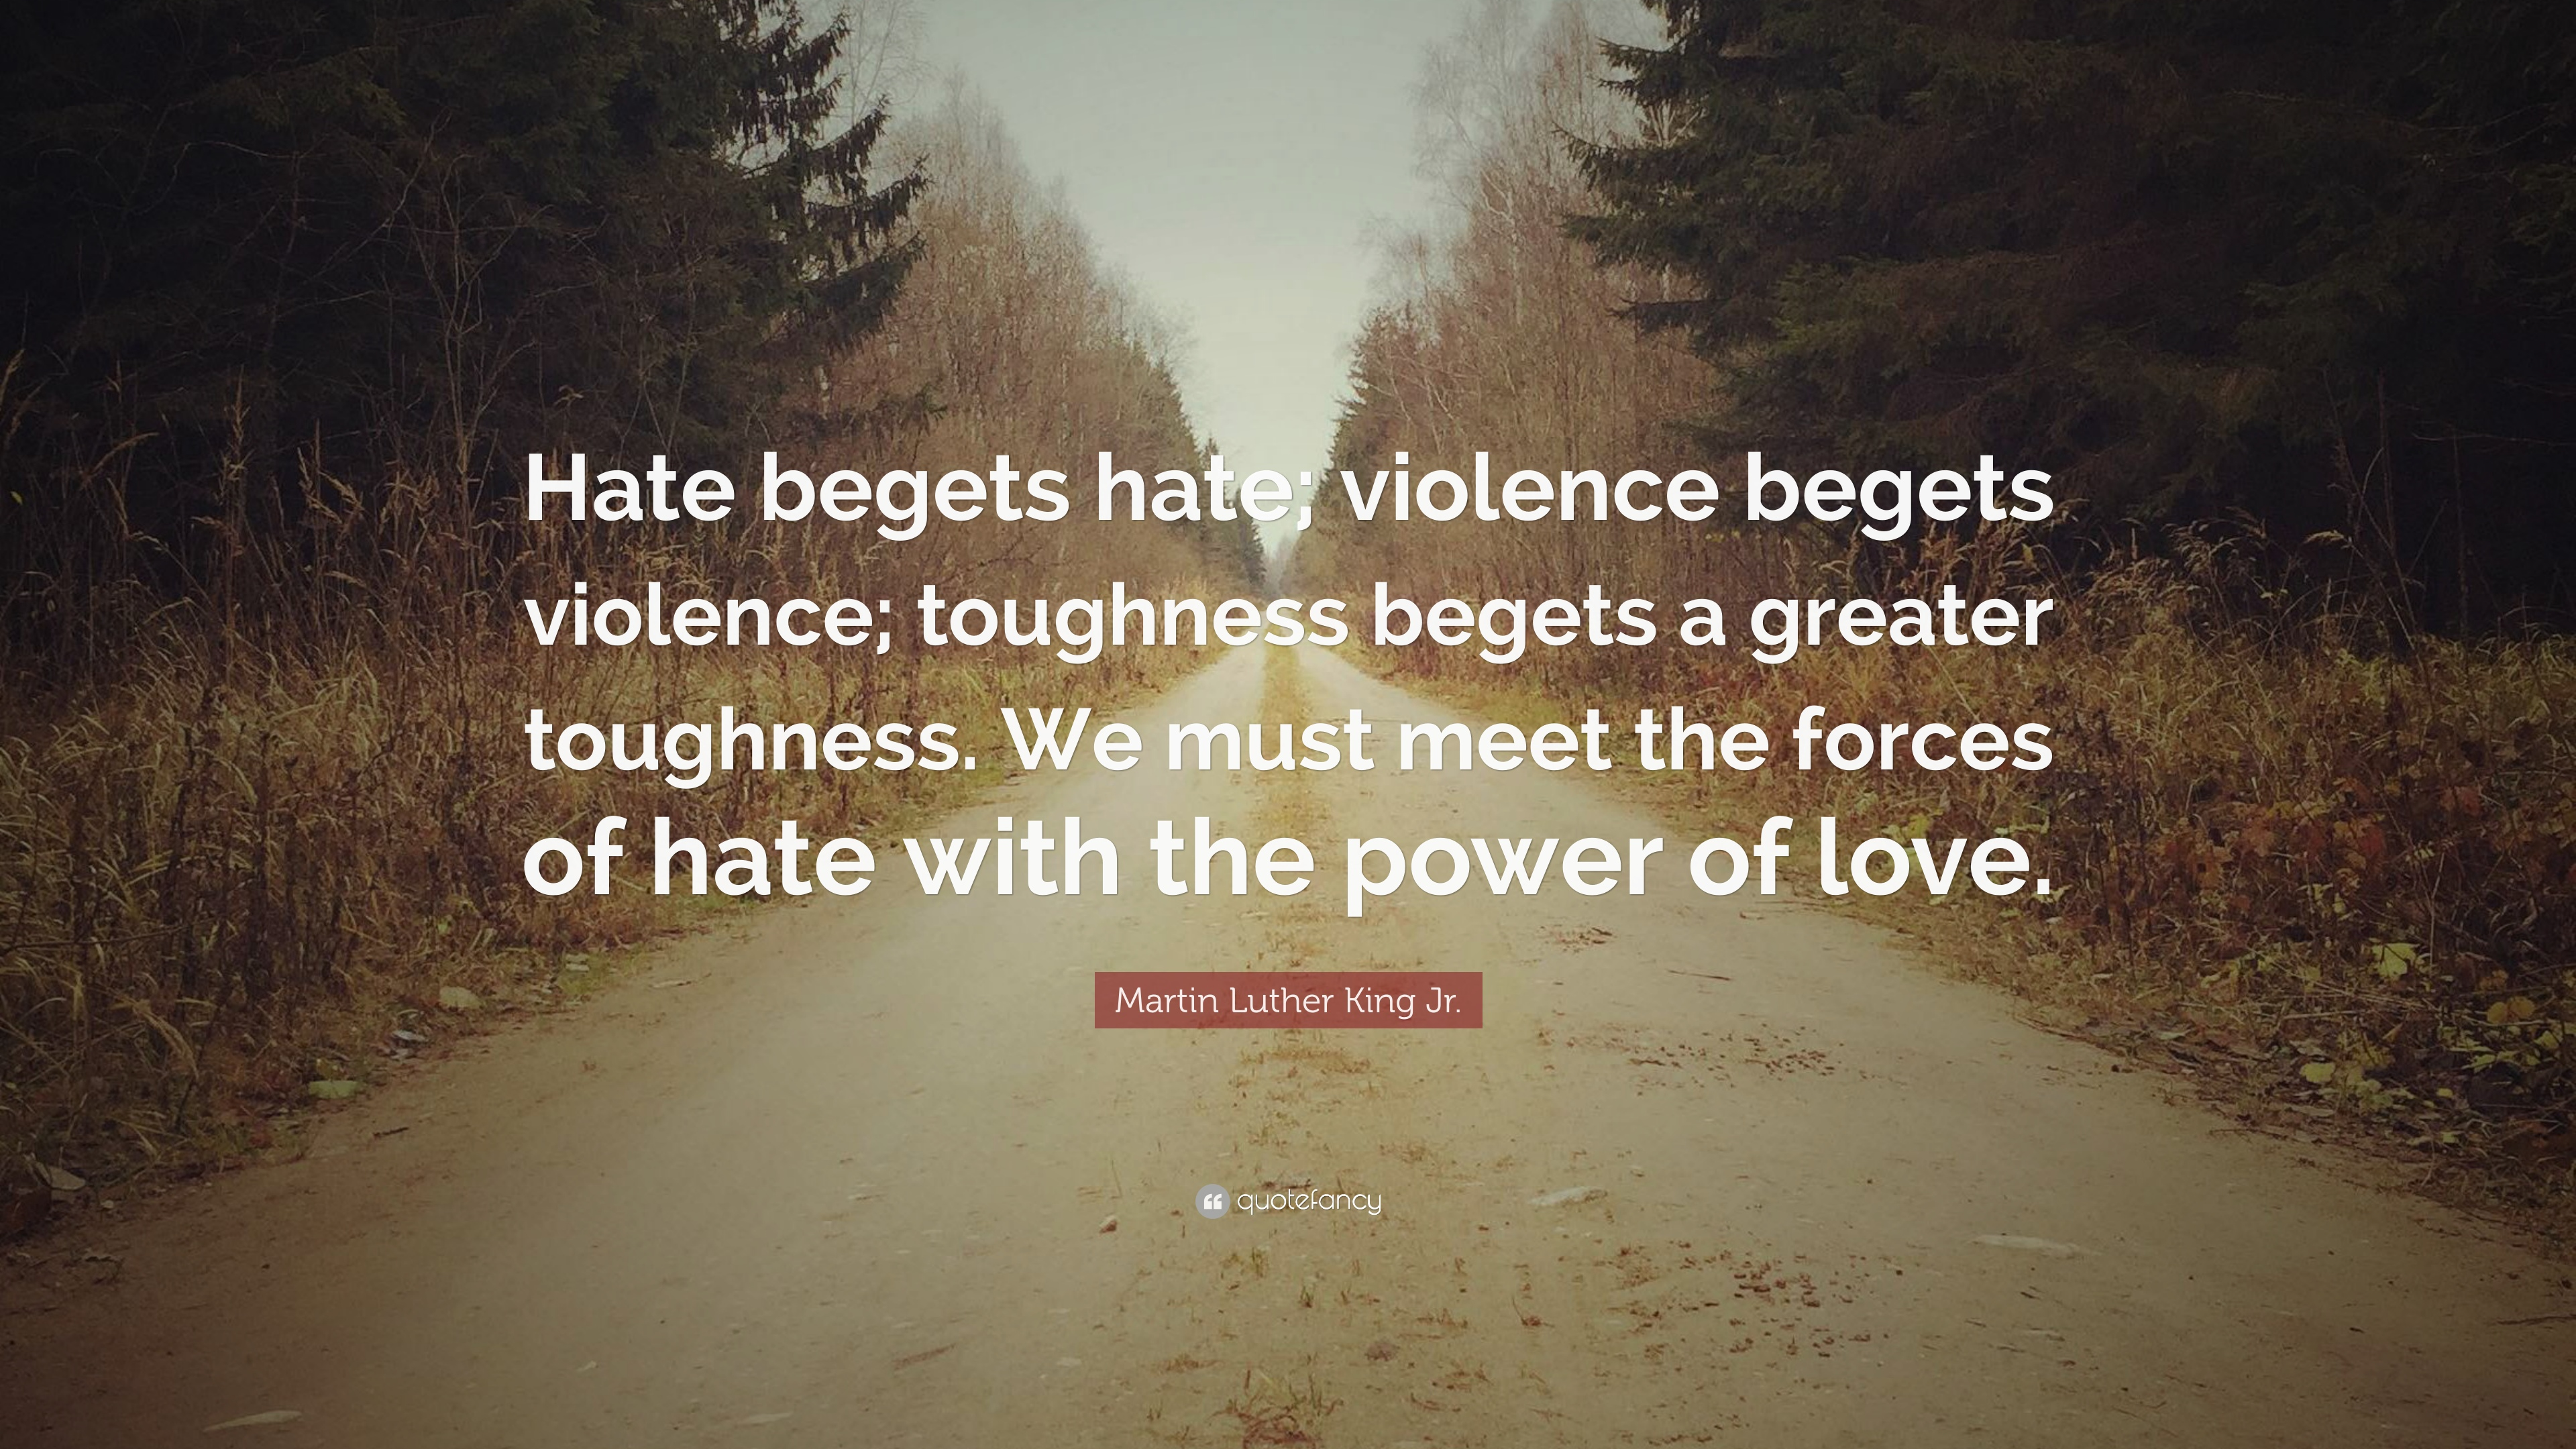 Martin Luther King Jr Quote Hate Begets Hate Violence Begets